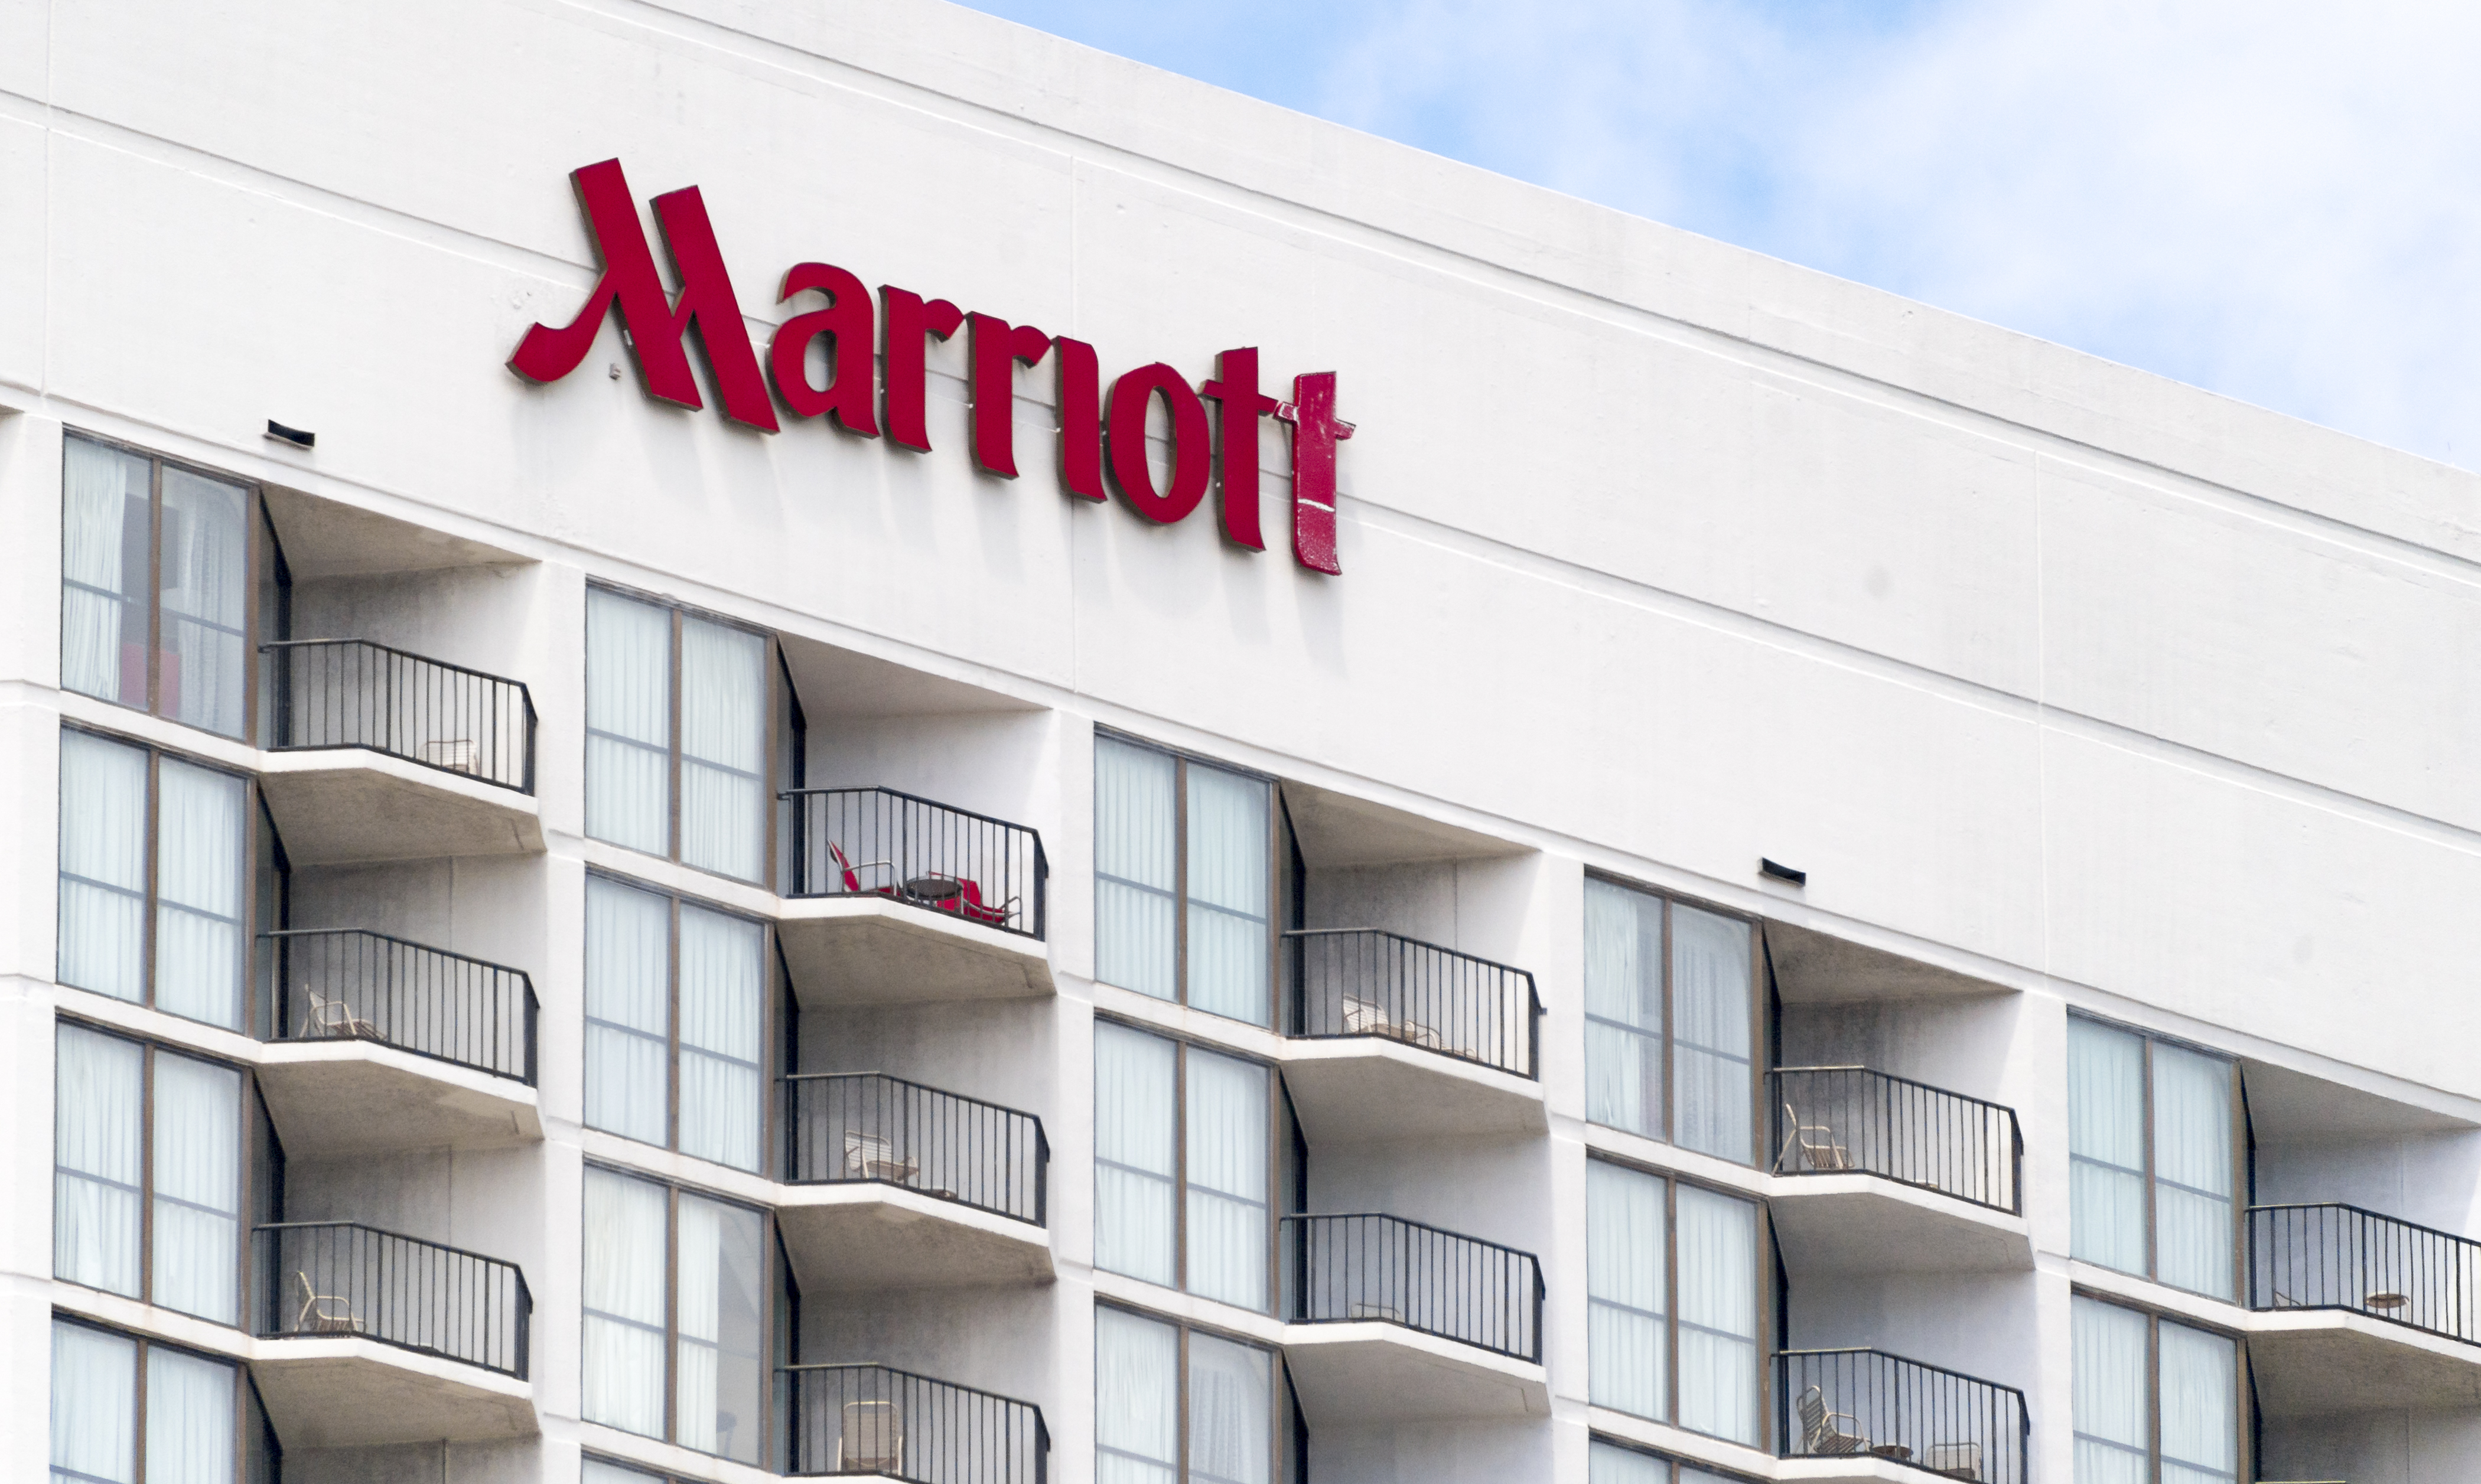 Marriott Hotel Sign or Logo. Upper floors with railings in